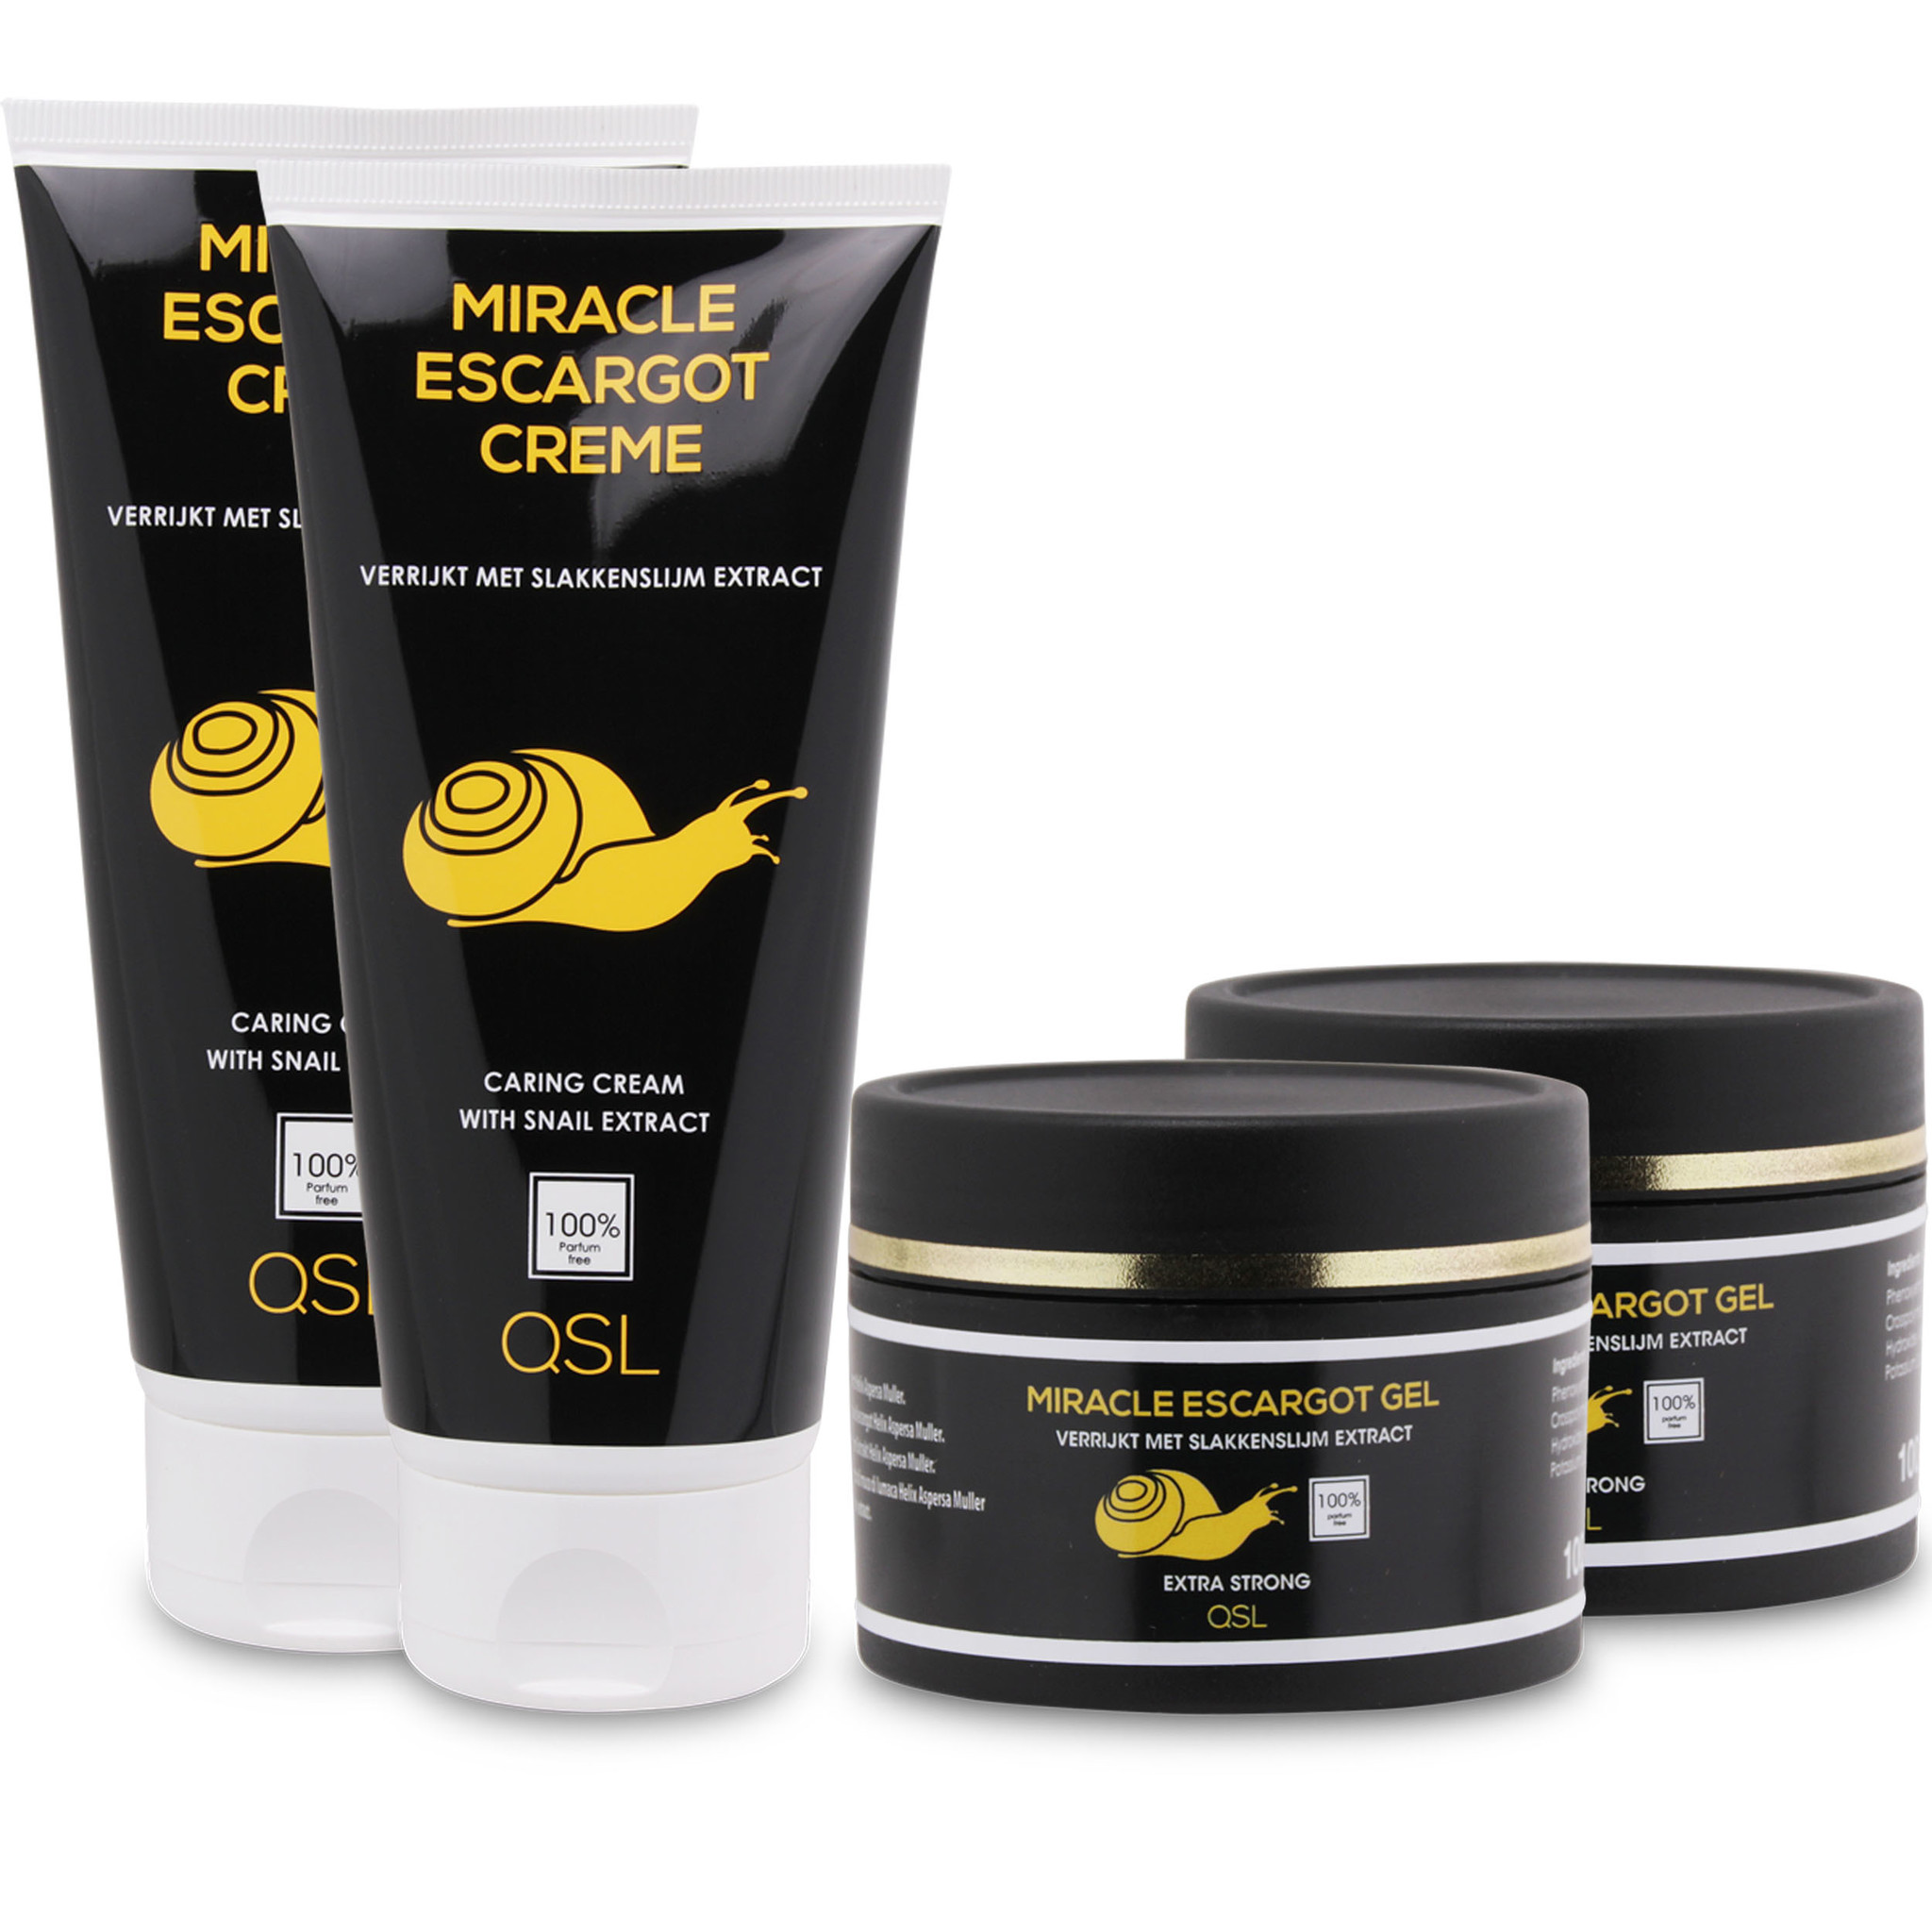 Miracle Escargot Offre combinée   2x Miracle Escargot Creme 200ml + 2x Miracle Escargot Gel 100ml